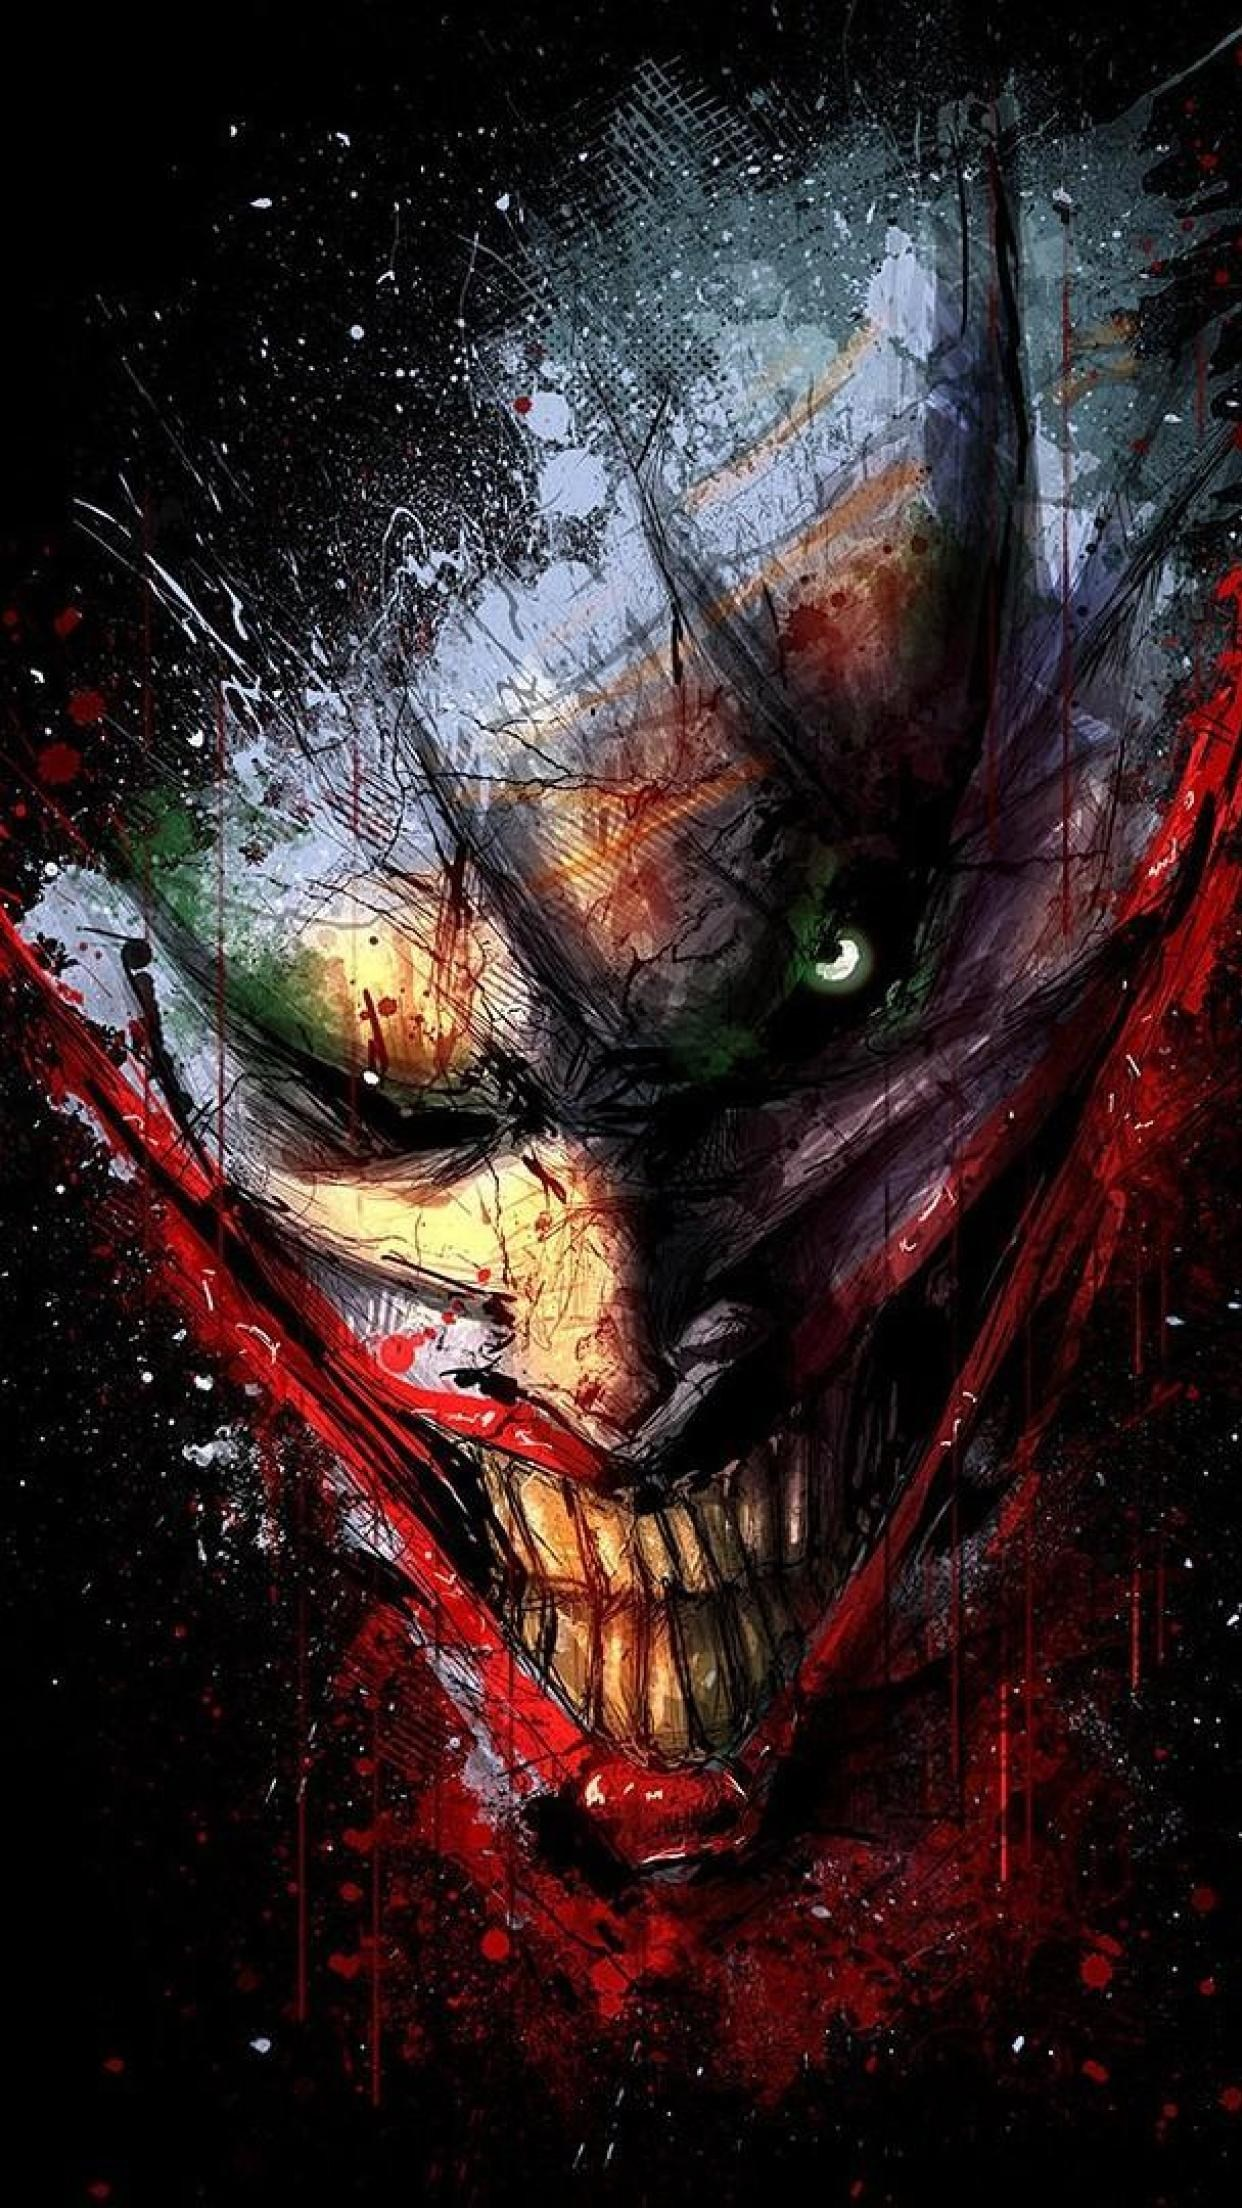 Best Anime Wallpapers Hd For Mobile Joker Wallpaper For Samsung